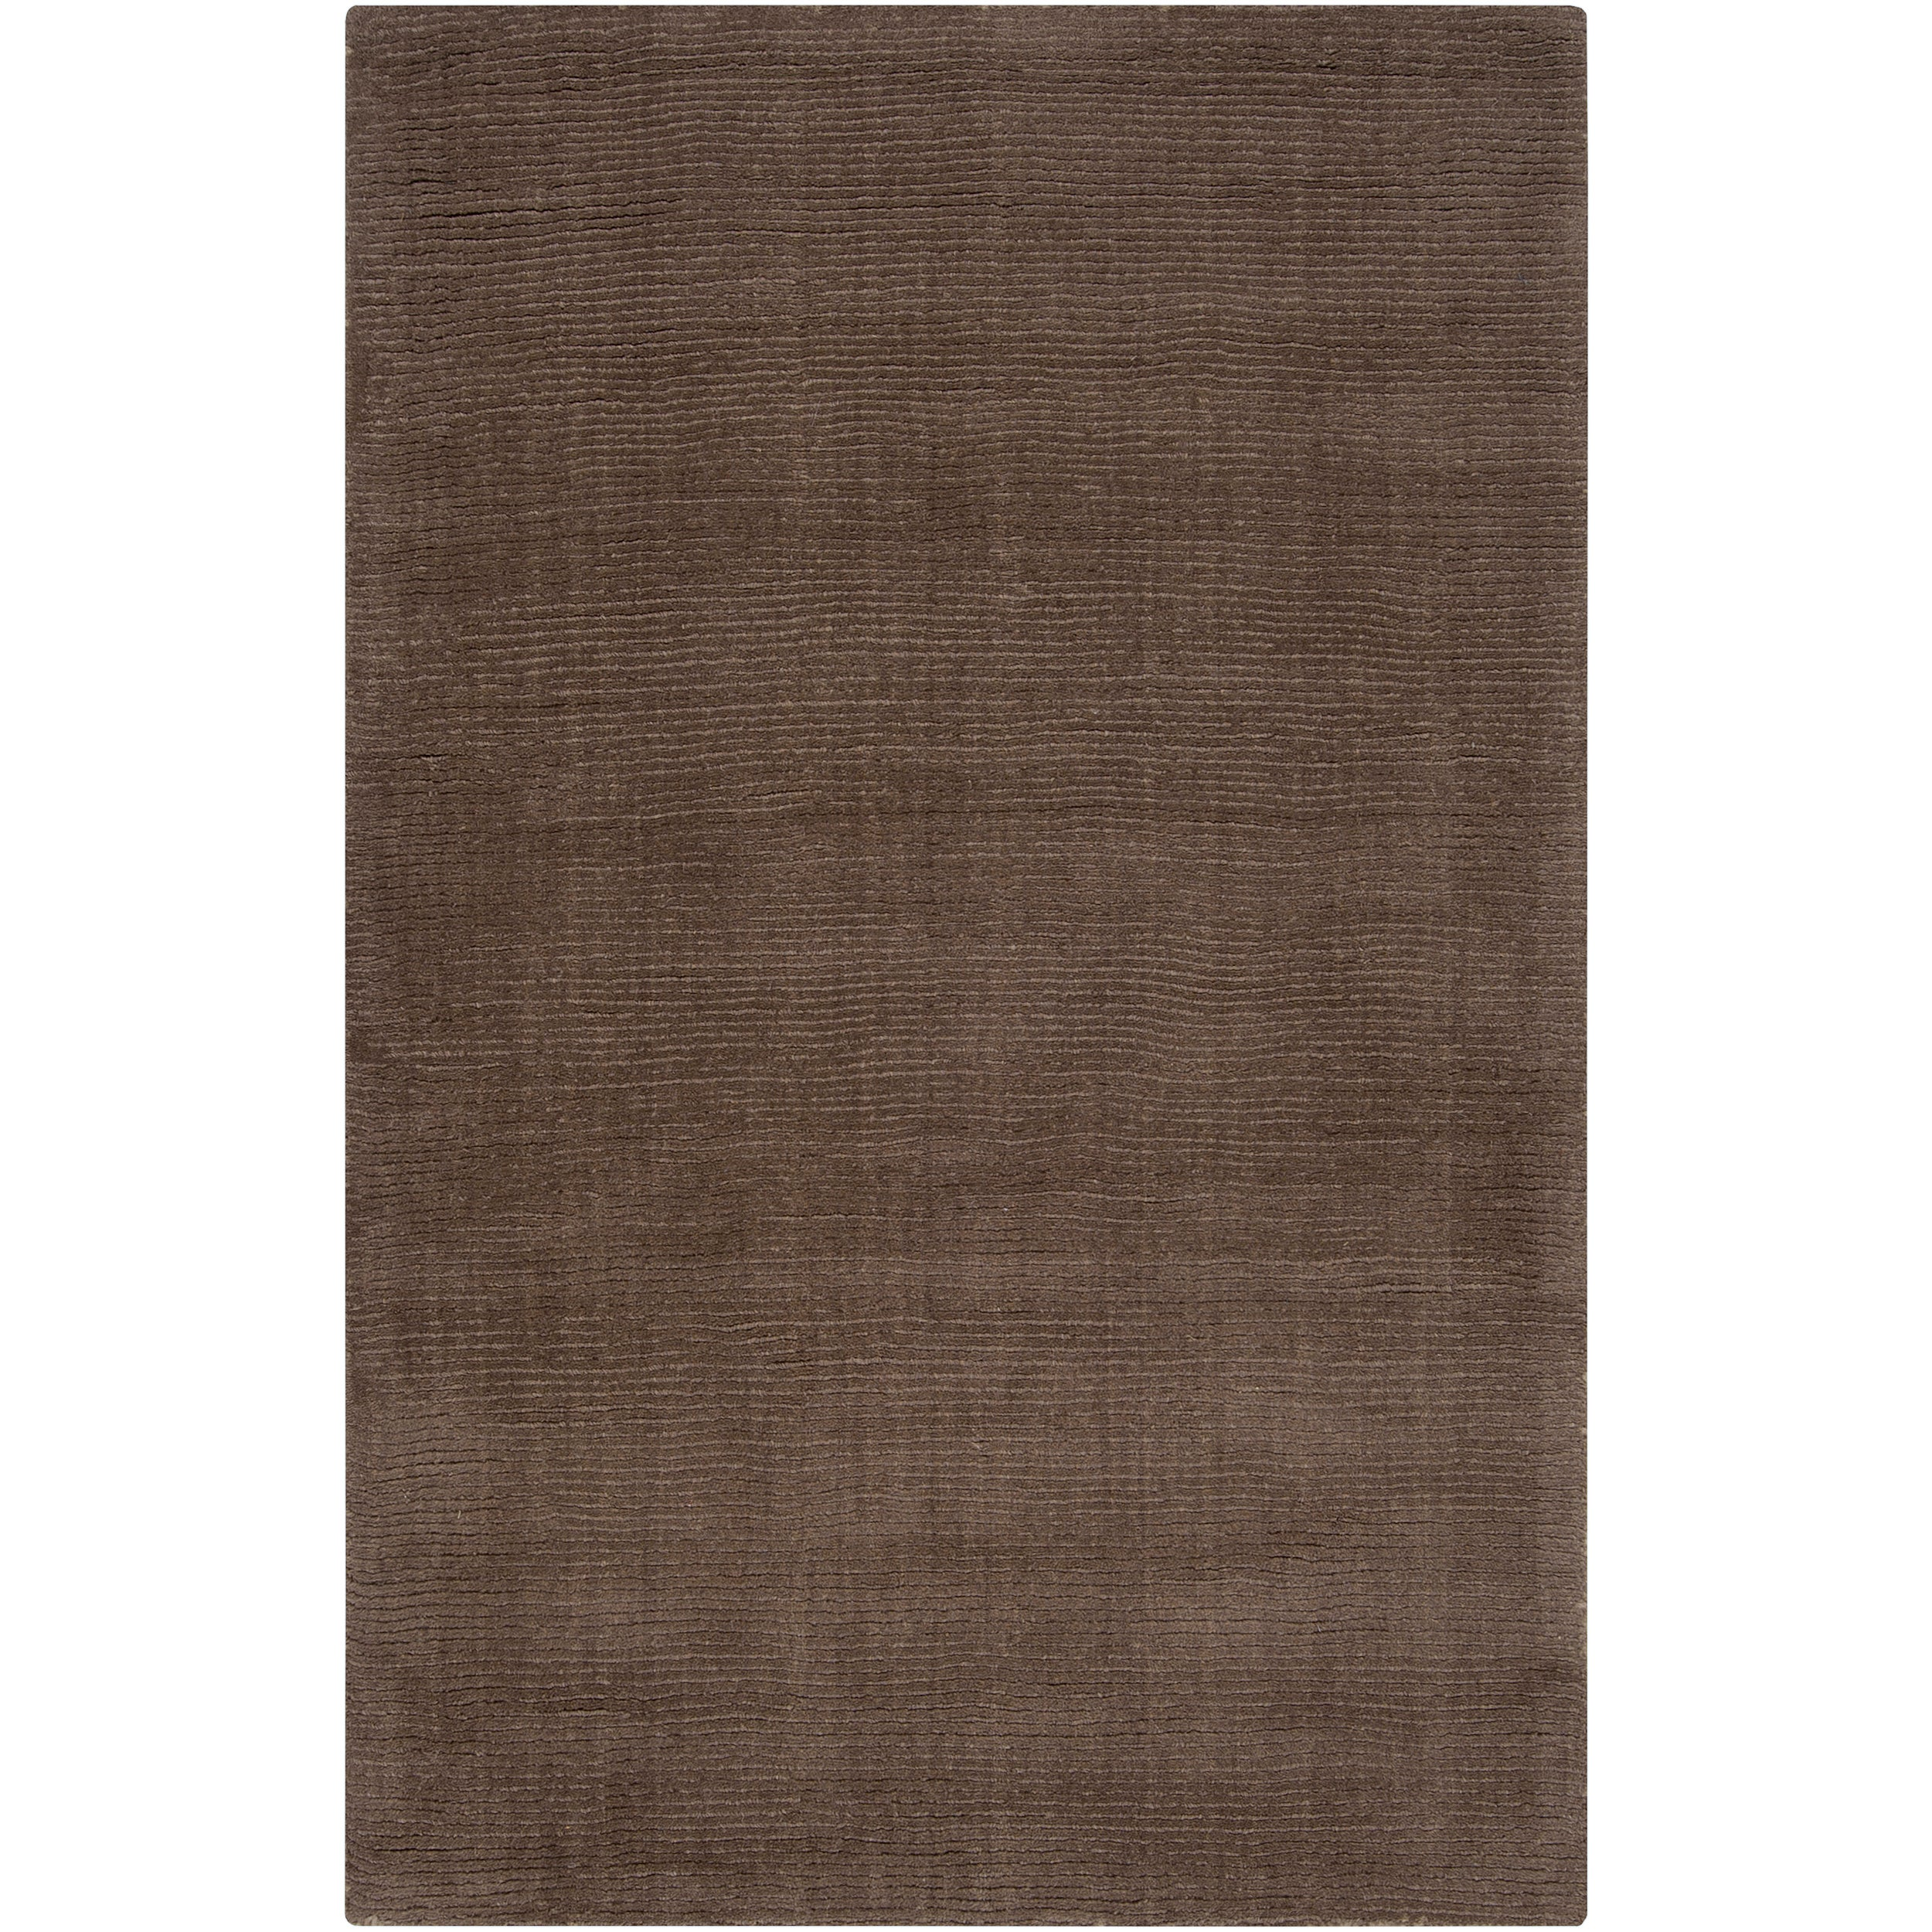 Hand-crafted Solid Brown Casual Mantra Wool Rug (9' x 13')